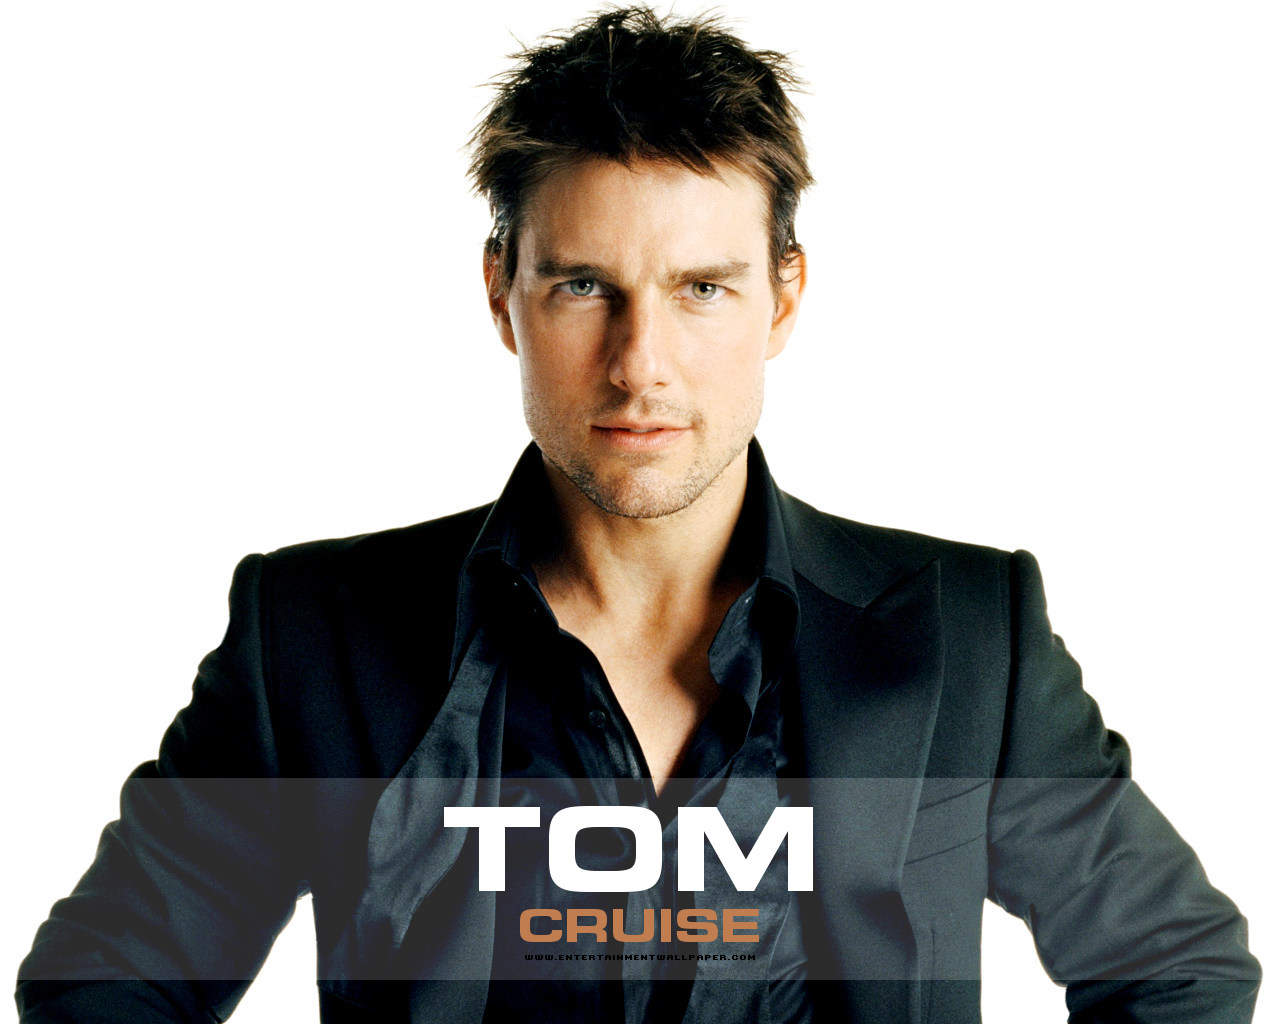 http://1.bp.blogspot.com/-PgxoNEINp3c/UDIf686rjfI/AAAAAAAAKKY/Lyf6doYzB8A/s1600/Tom+Cruise+HD+Wallpapers+%25252814%252529.jpg